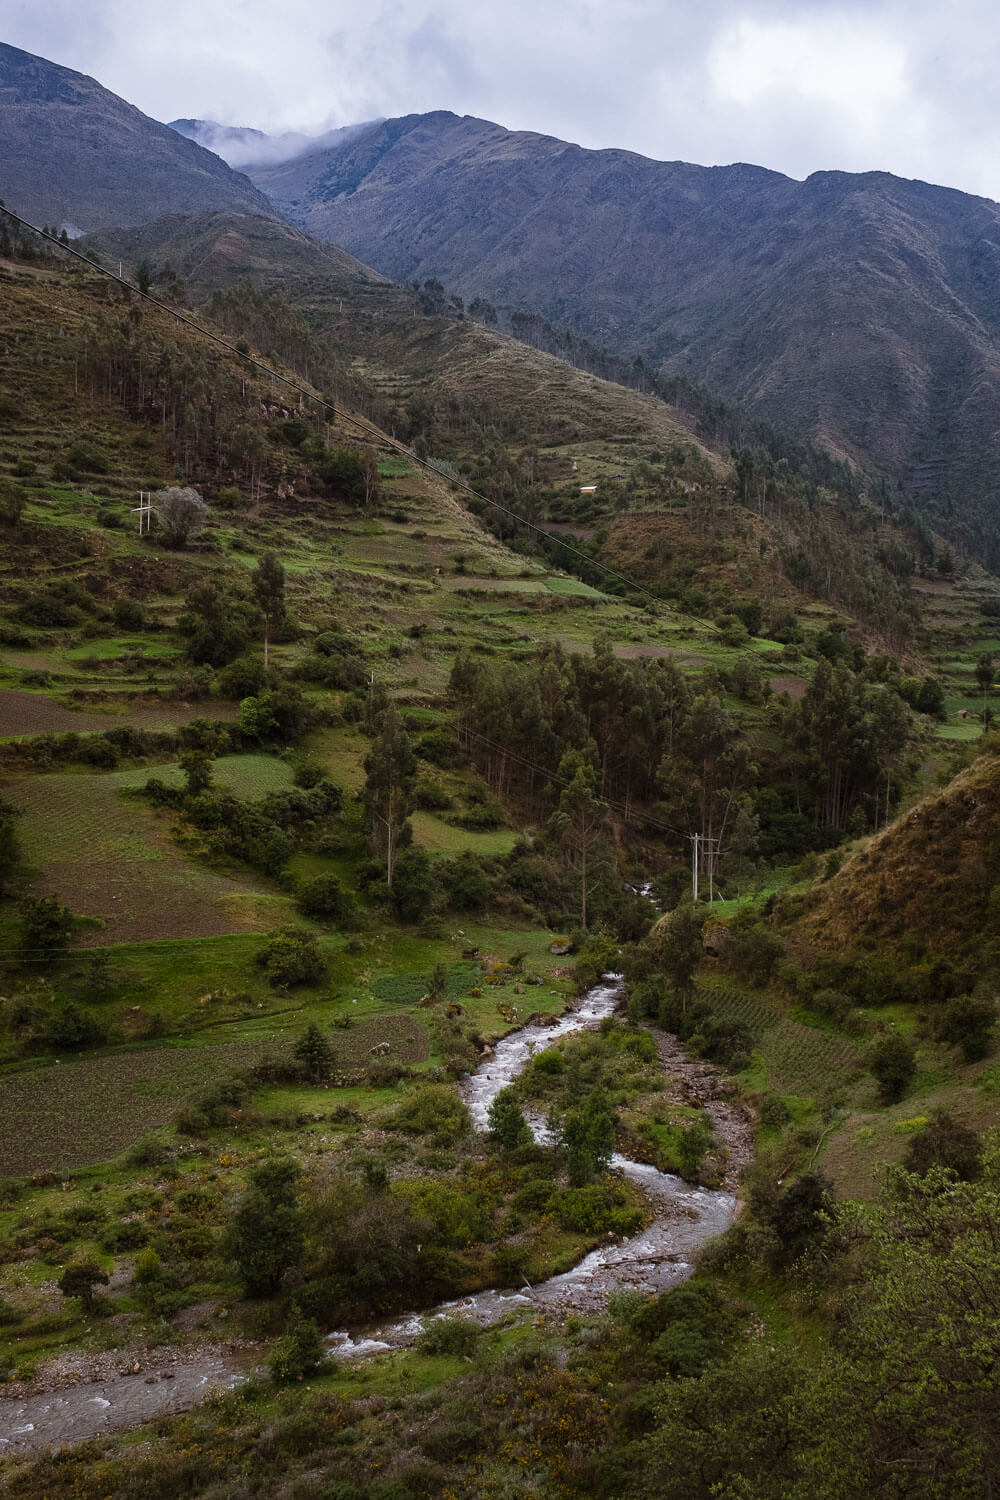 """The Sacred Valley, Peru. Travel photography and guide by © Natasha Lequepeys for """"And Then I Met Yoko"""". #peru #sacredvalley #patacancha #photoblog #travelblog #travelphotography #landscapephotography #travelitinerary #fujifilm #river #tradition #culture #nature #andes #village #valley #cusco #ollantaytambo #travel #travelperu"""